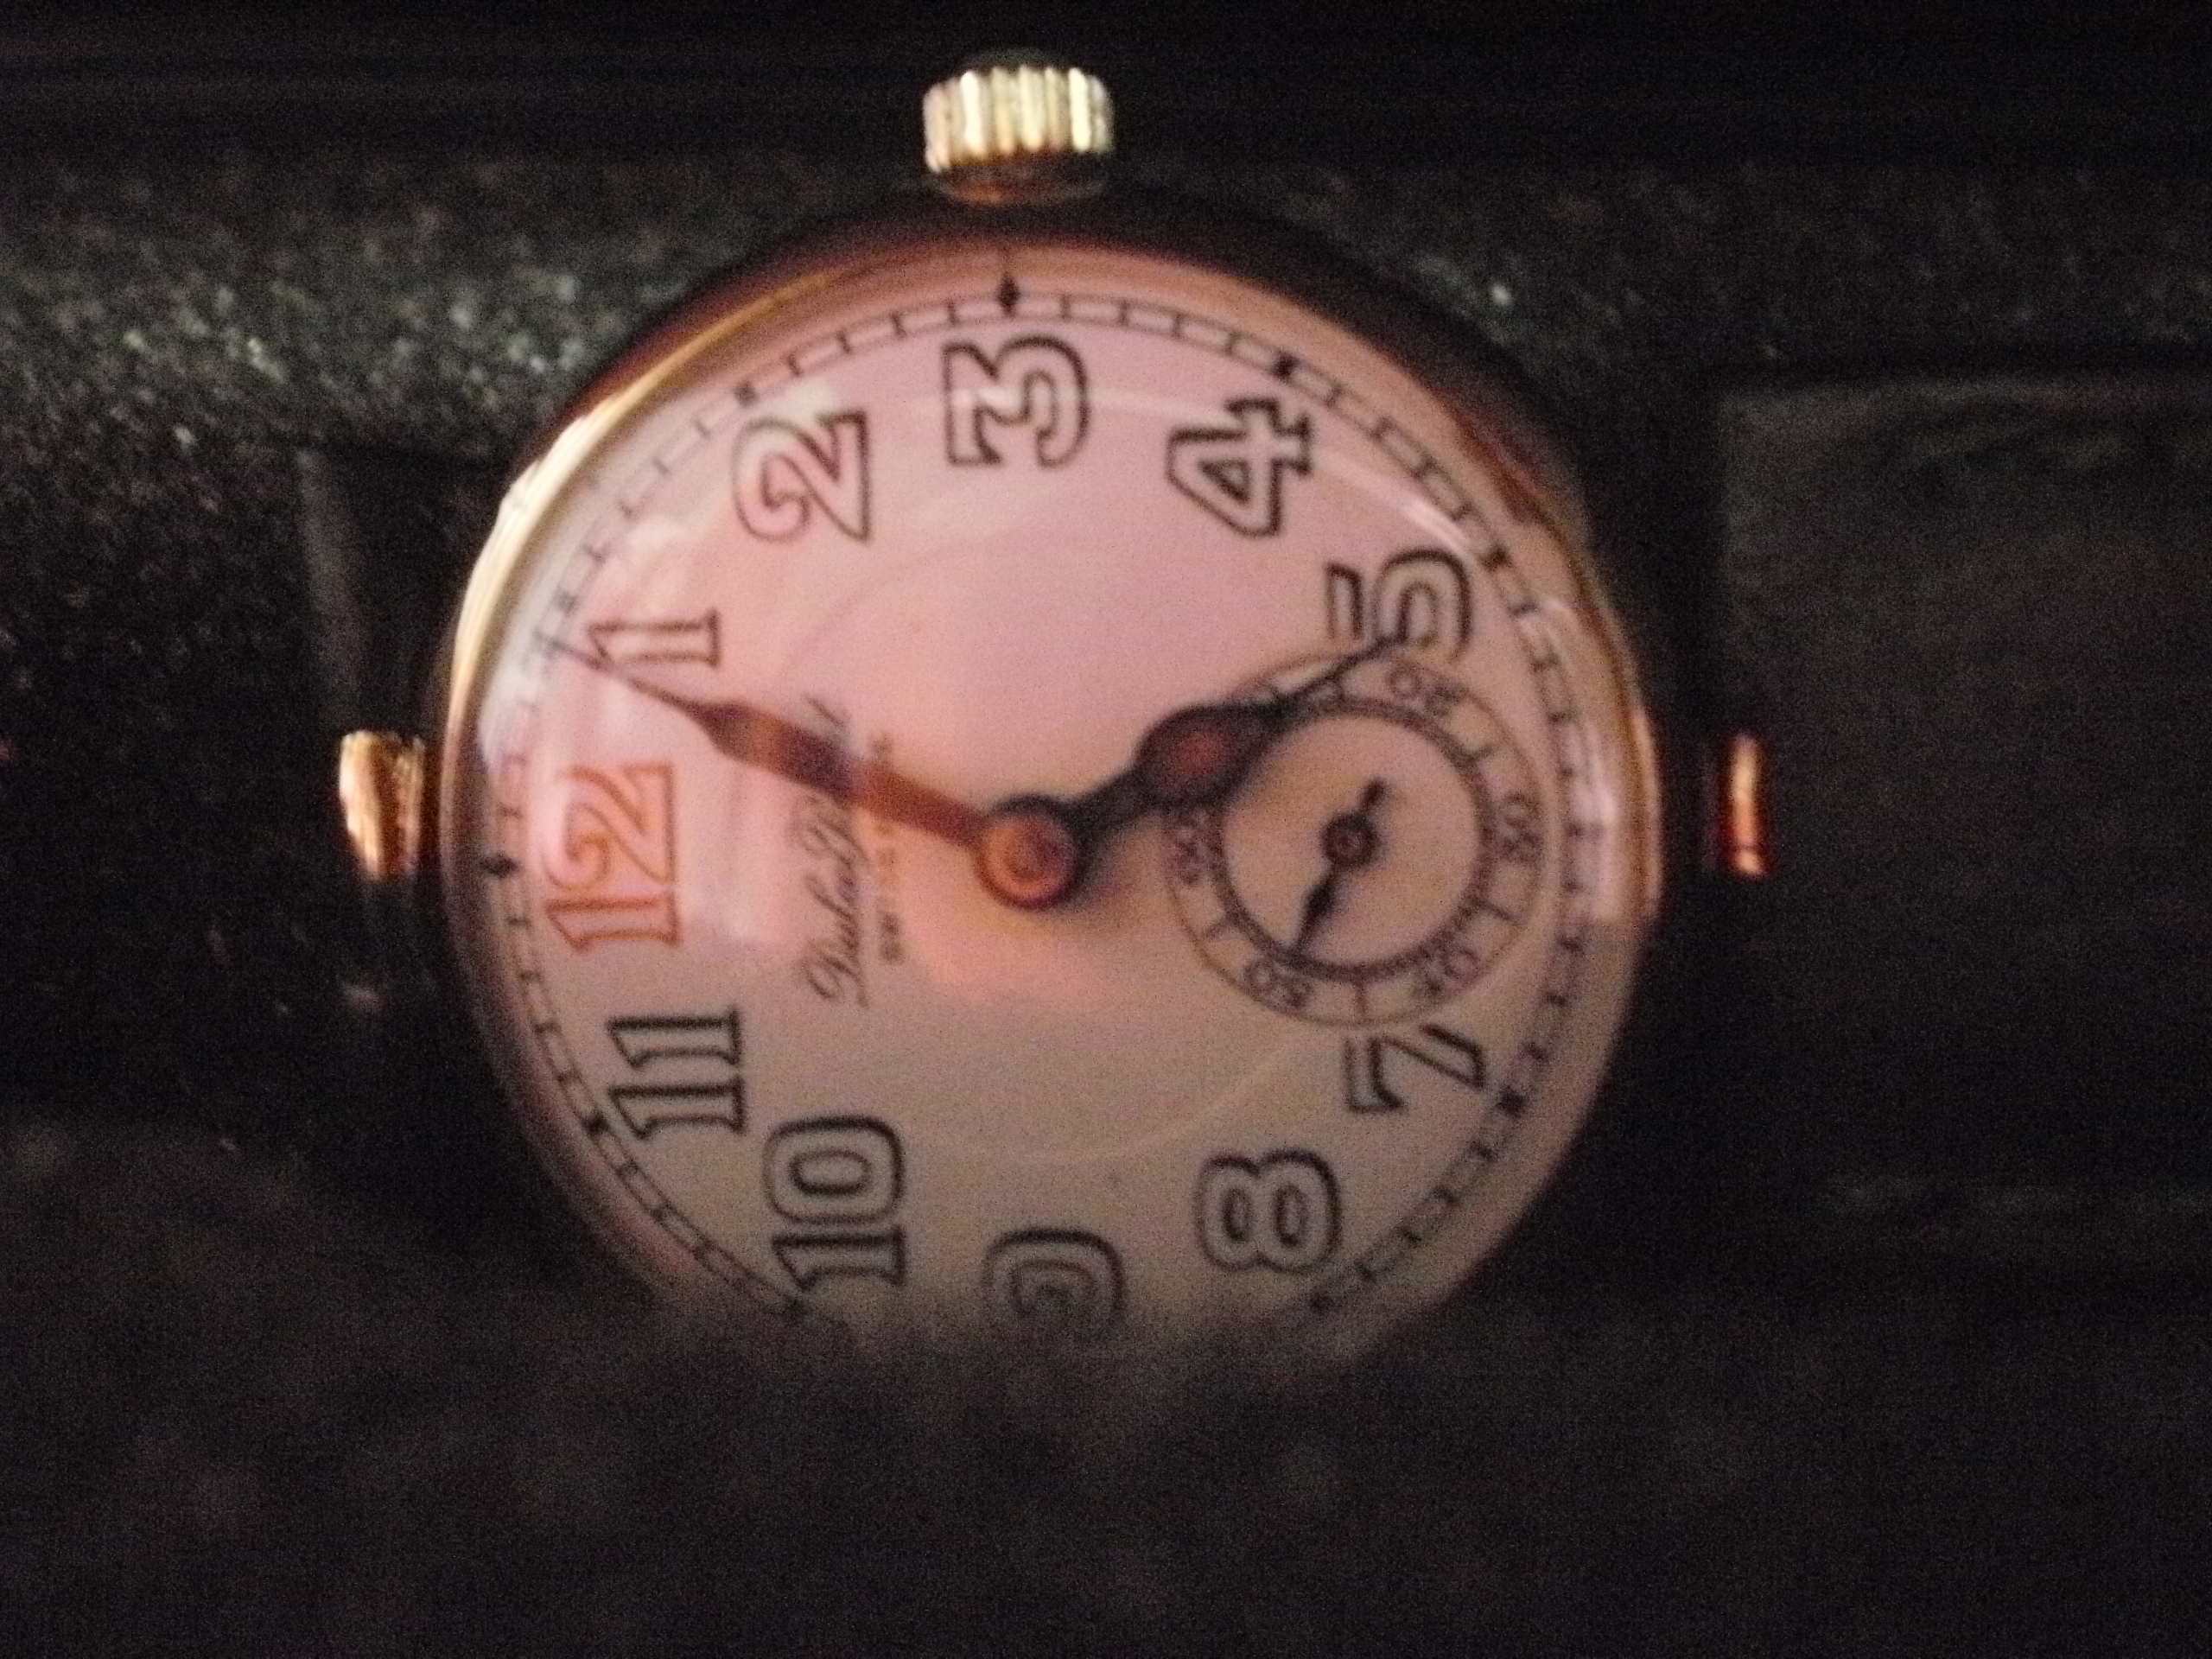 FOR SALE: Antique Watch For Sale